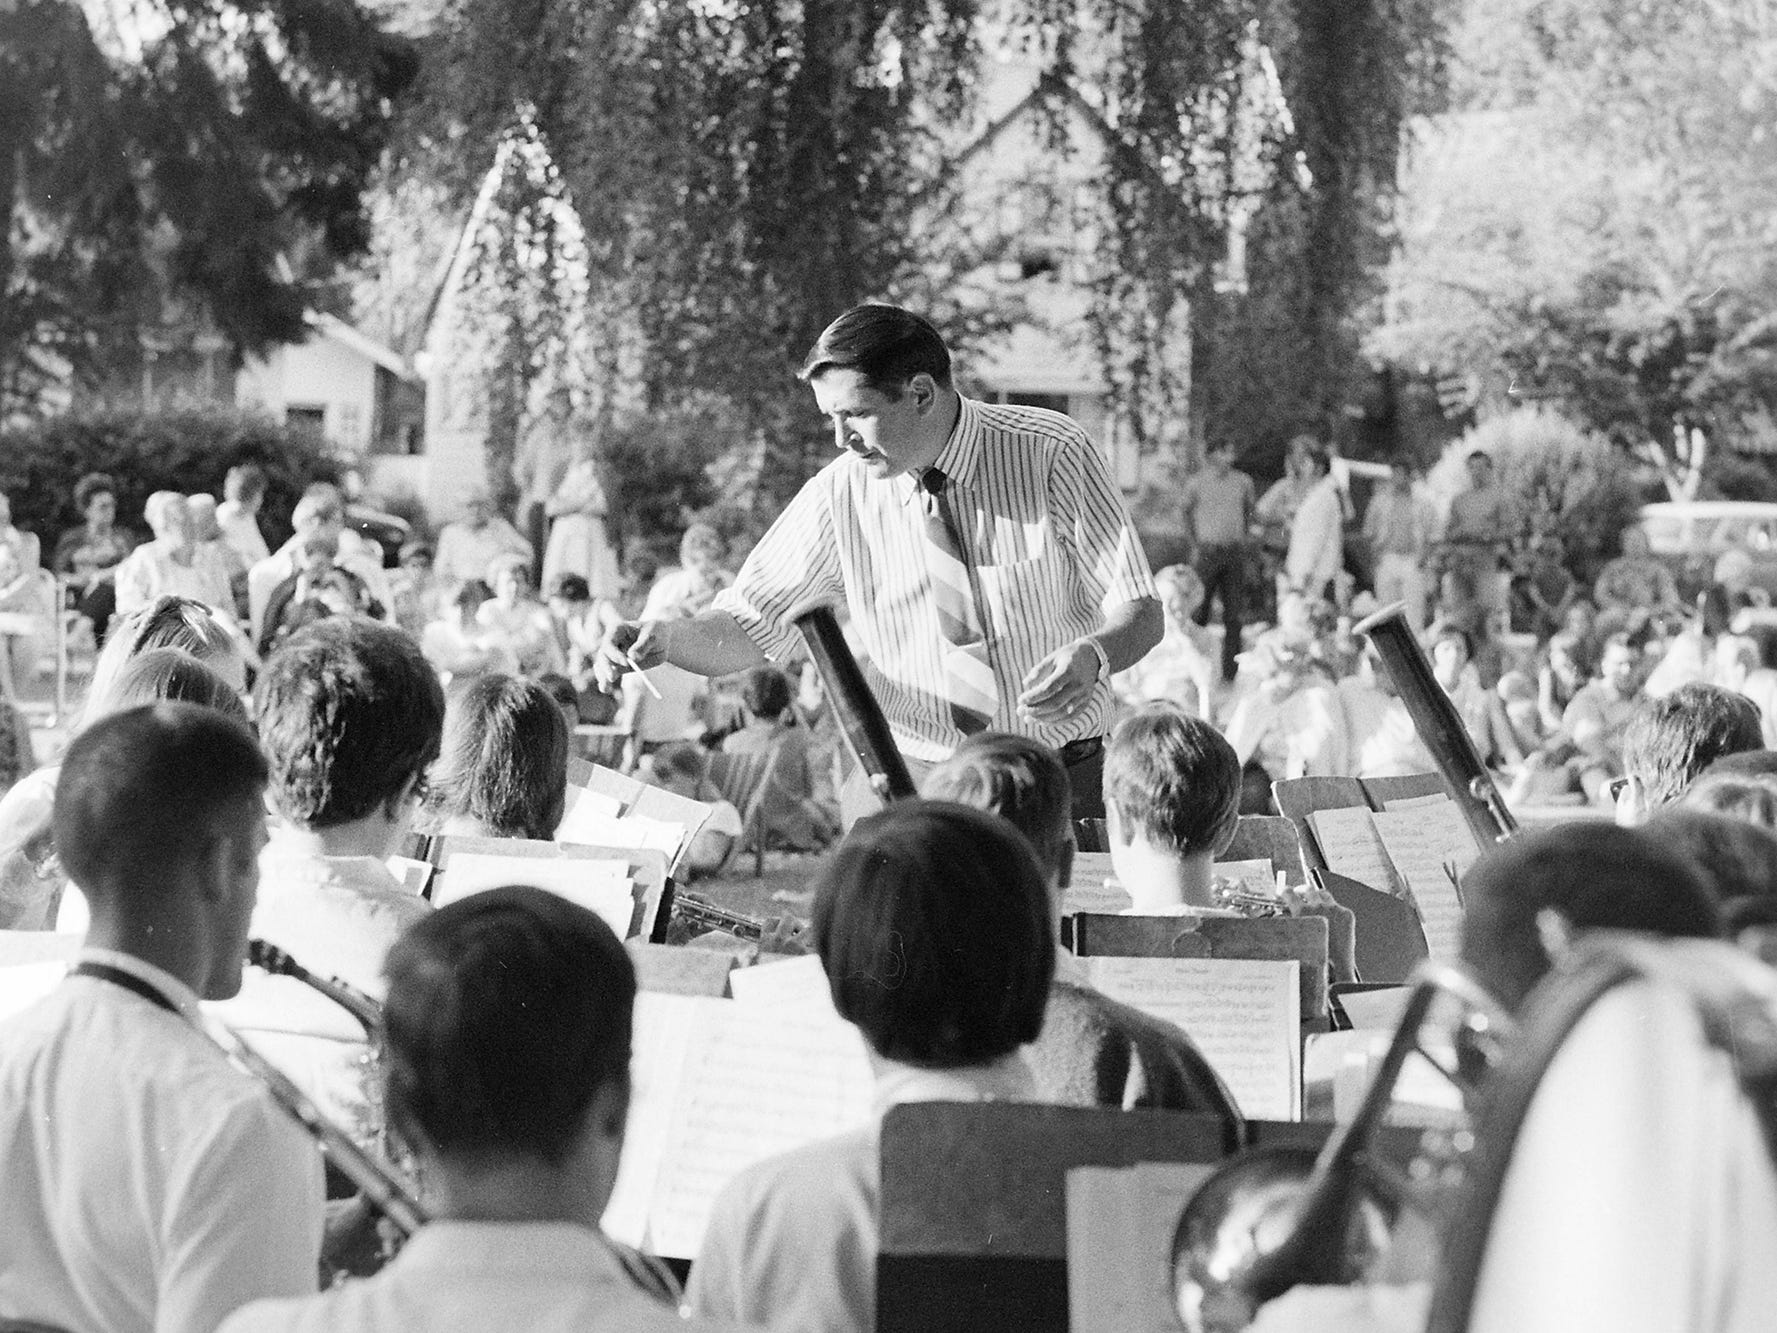 06/24/70